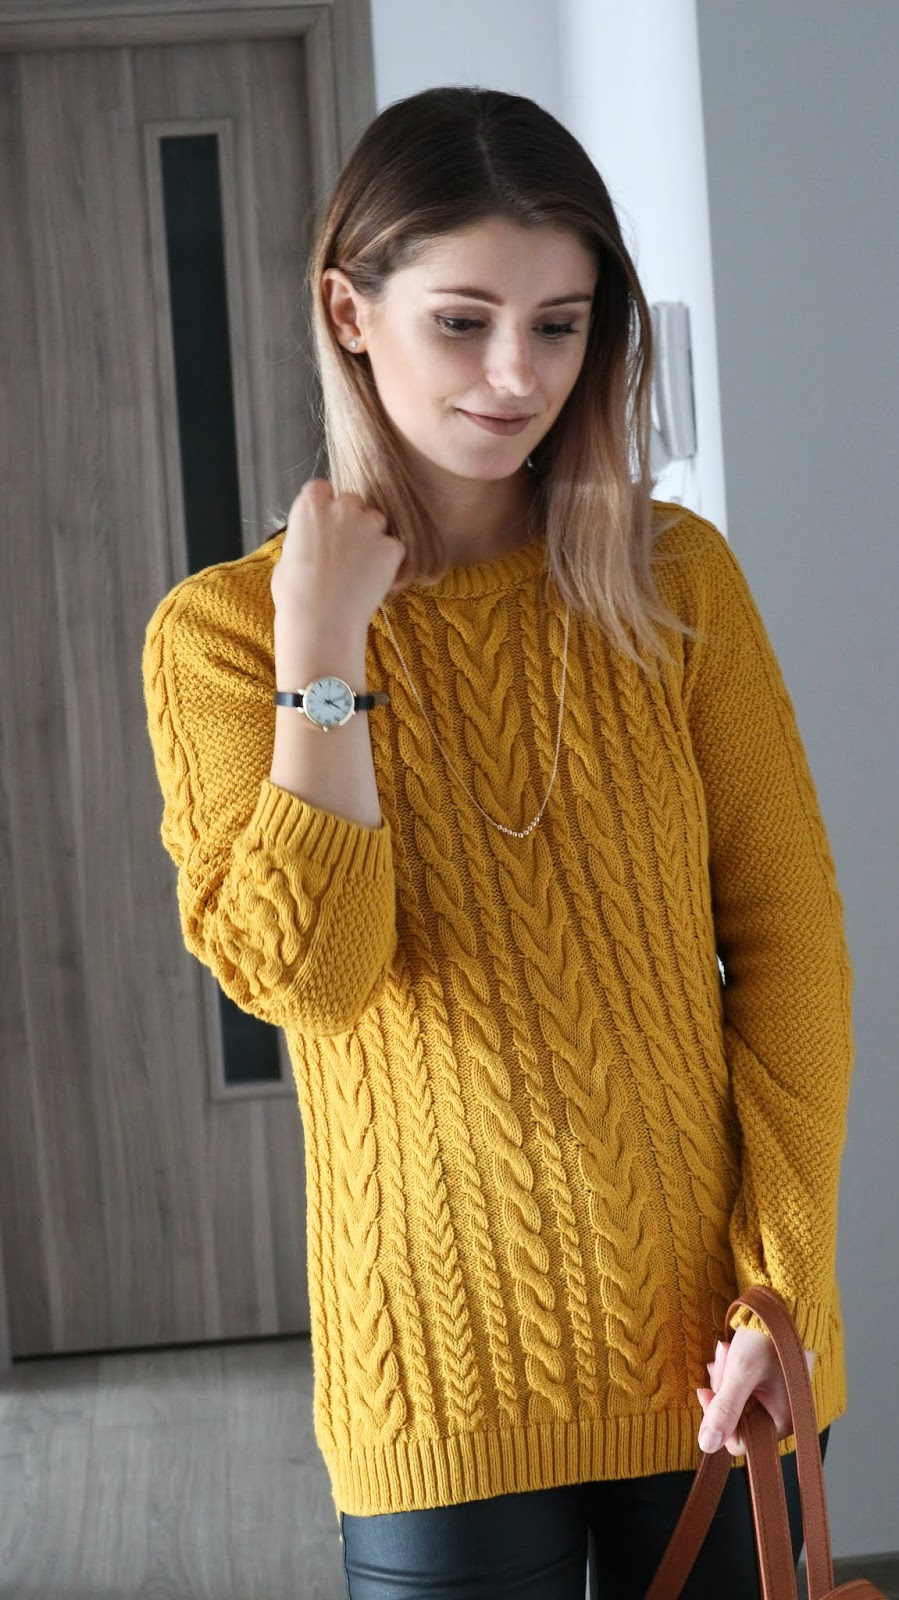 mustard sweater outfit with accessories